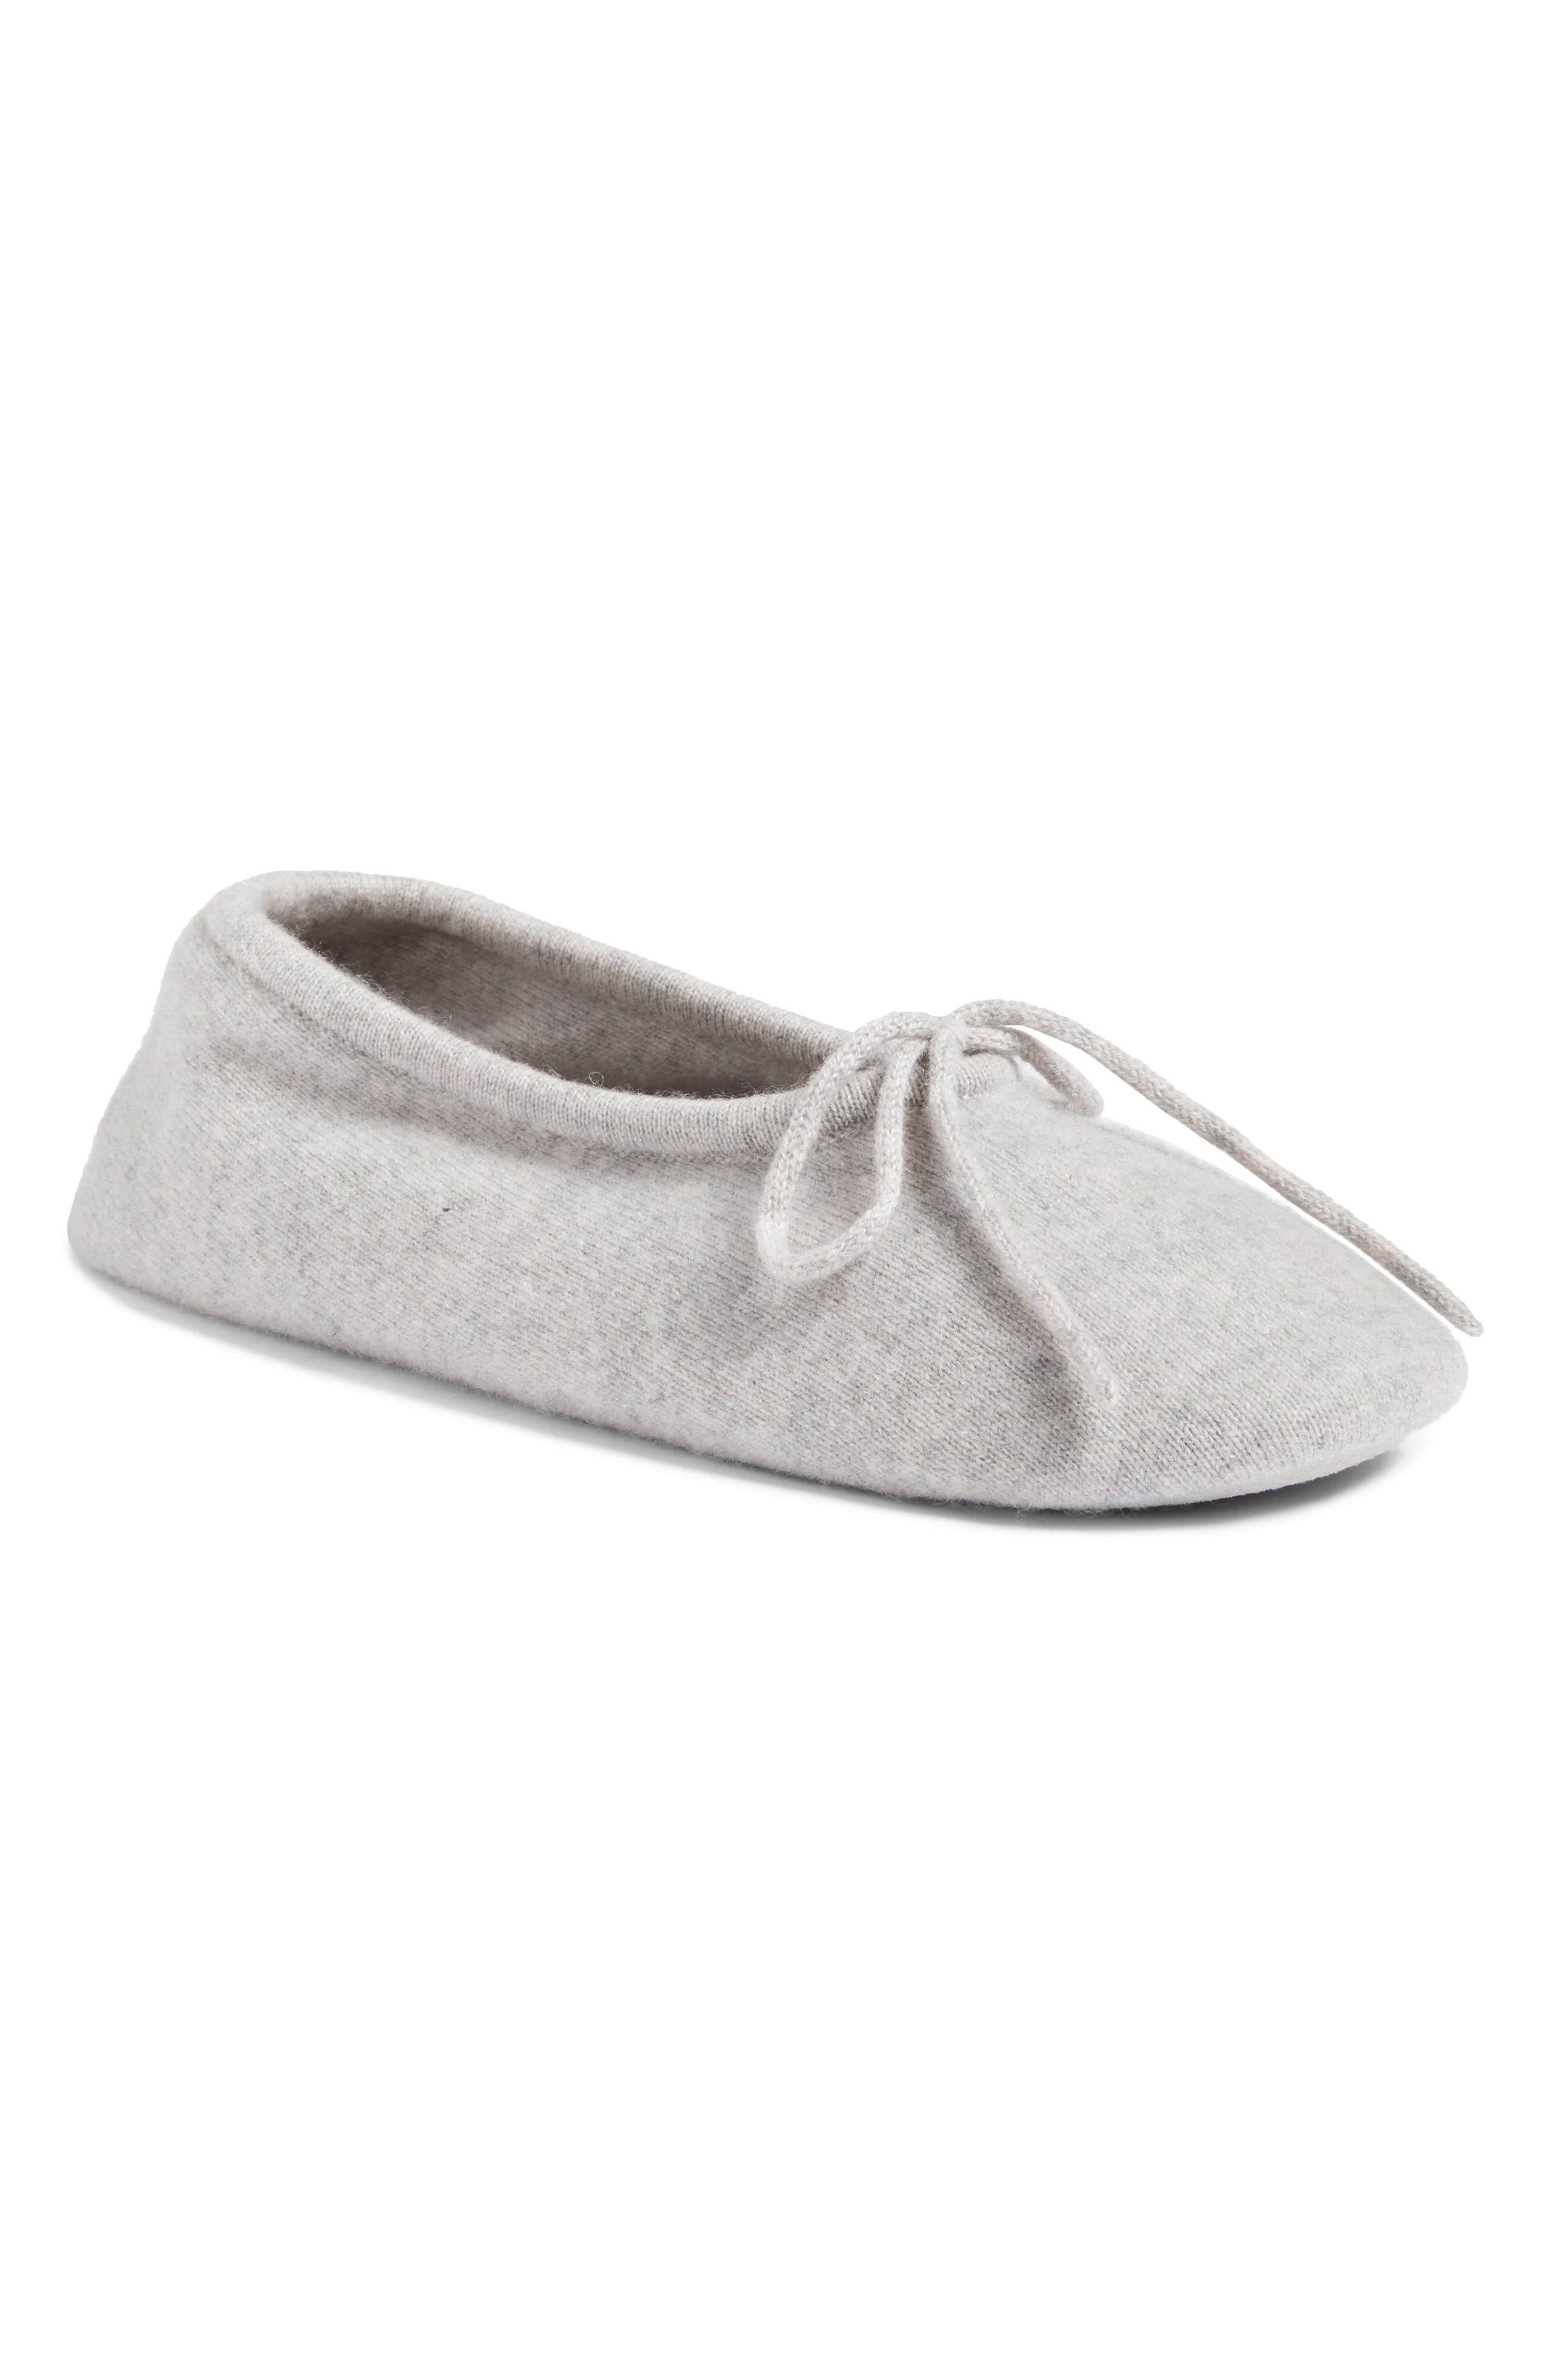 Wool & Cashmere Ballerina Slippers,                             Main thumbnail 1, color,                             Grey Soft Heather